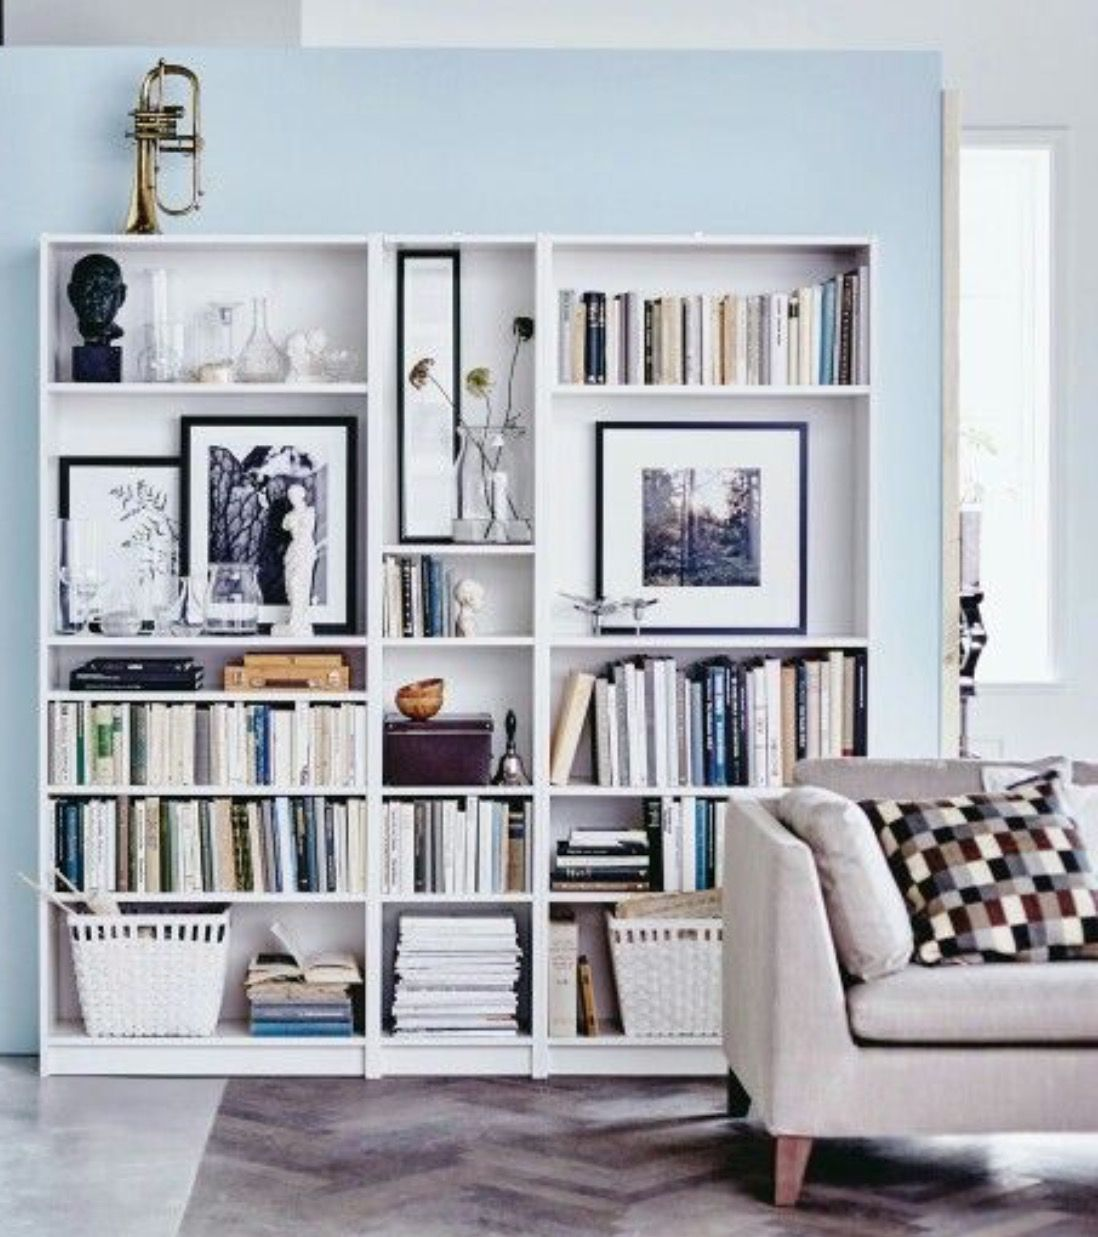 ikea shelves shelves on walls pinterest wohnzimmer regal und billy b cherregal. Black Bedroom Furniture Sets. Home Design Ideas